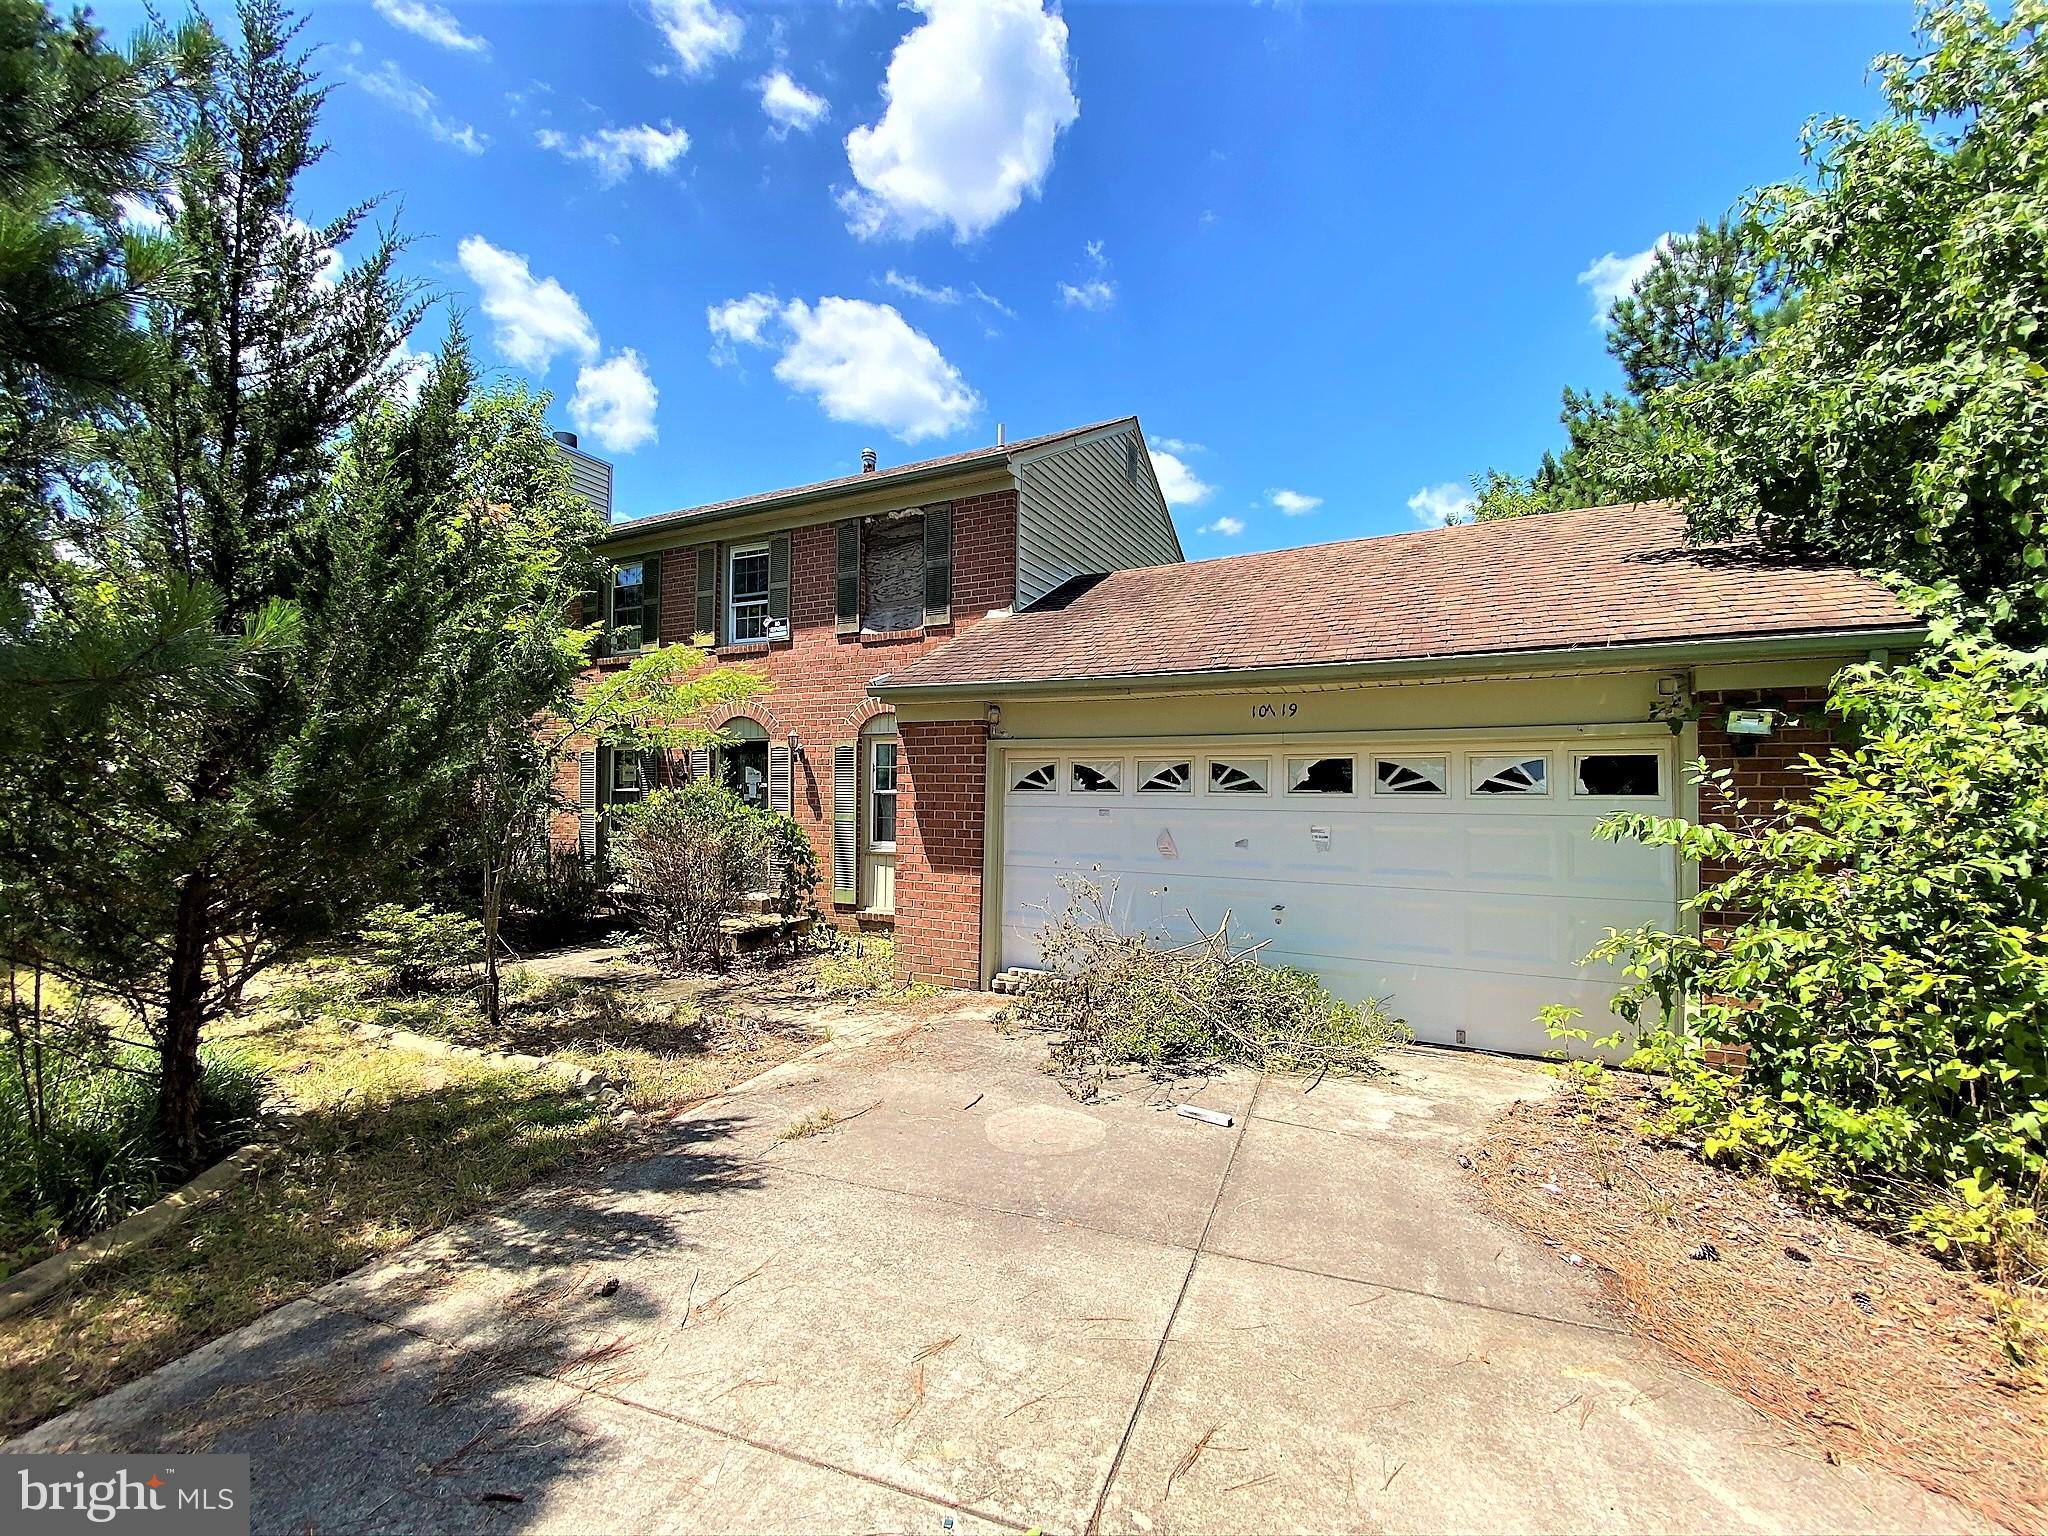 If you are looking for your next rehab opportunity, look no further!  This property is located in a great neighborhood and  is perfect for the savvy investor!  Boasting 4 bedrooms and 2 1/2 bathrooms as well as a large basement ready to be finished.  This opportunity won't last long